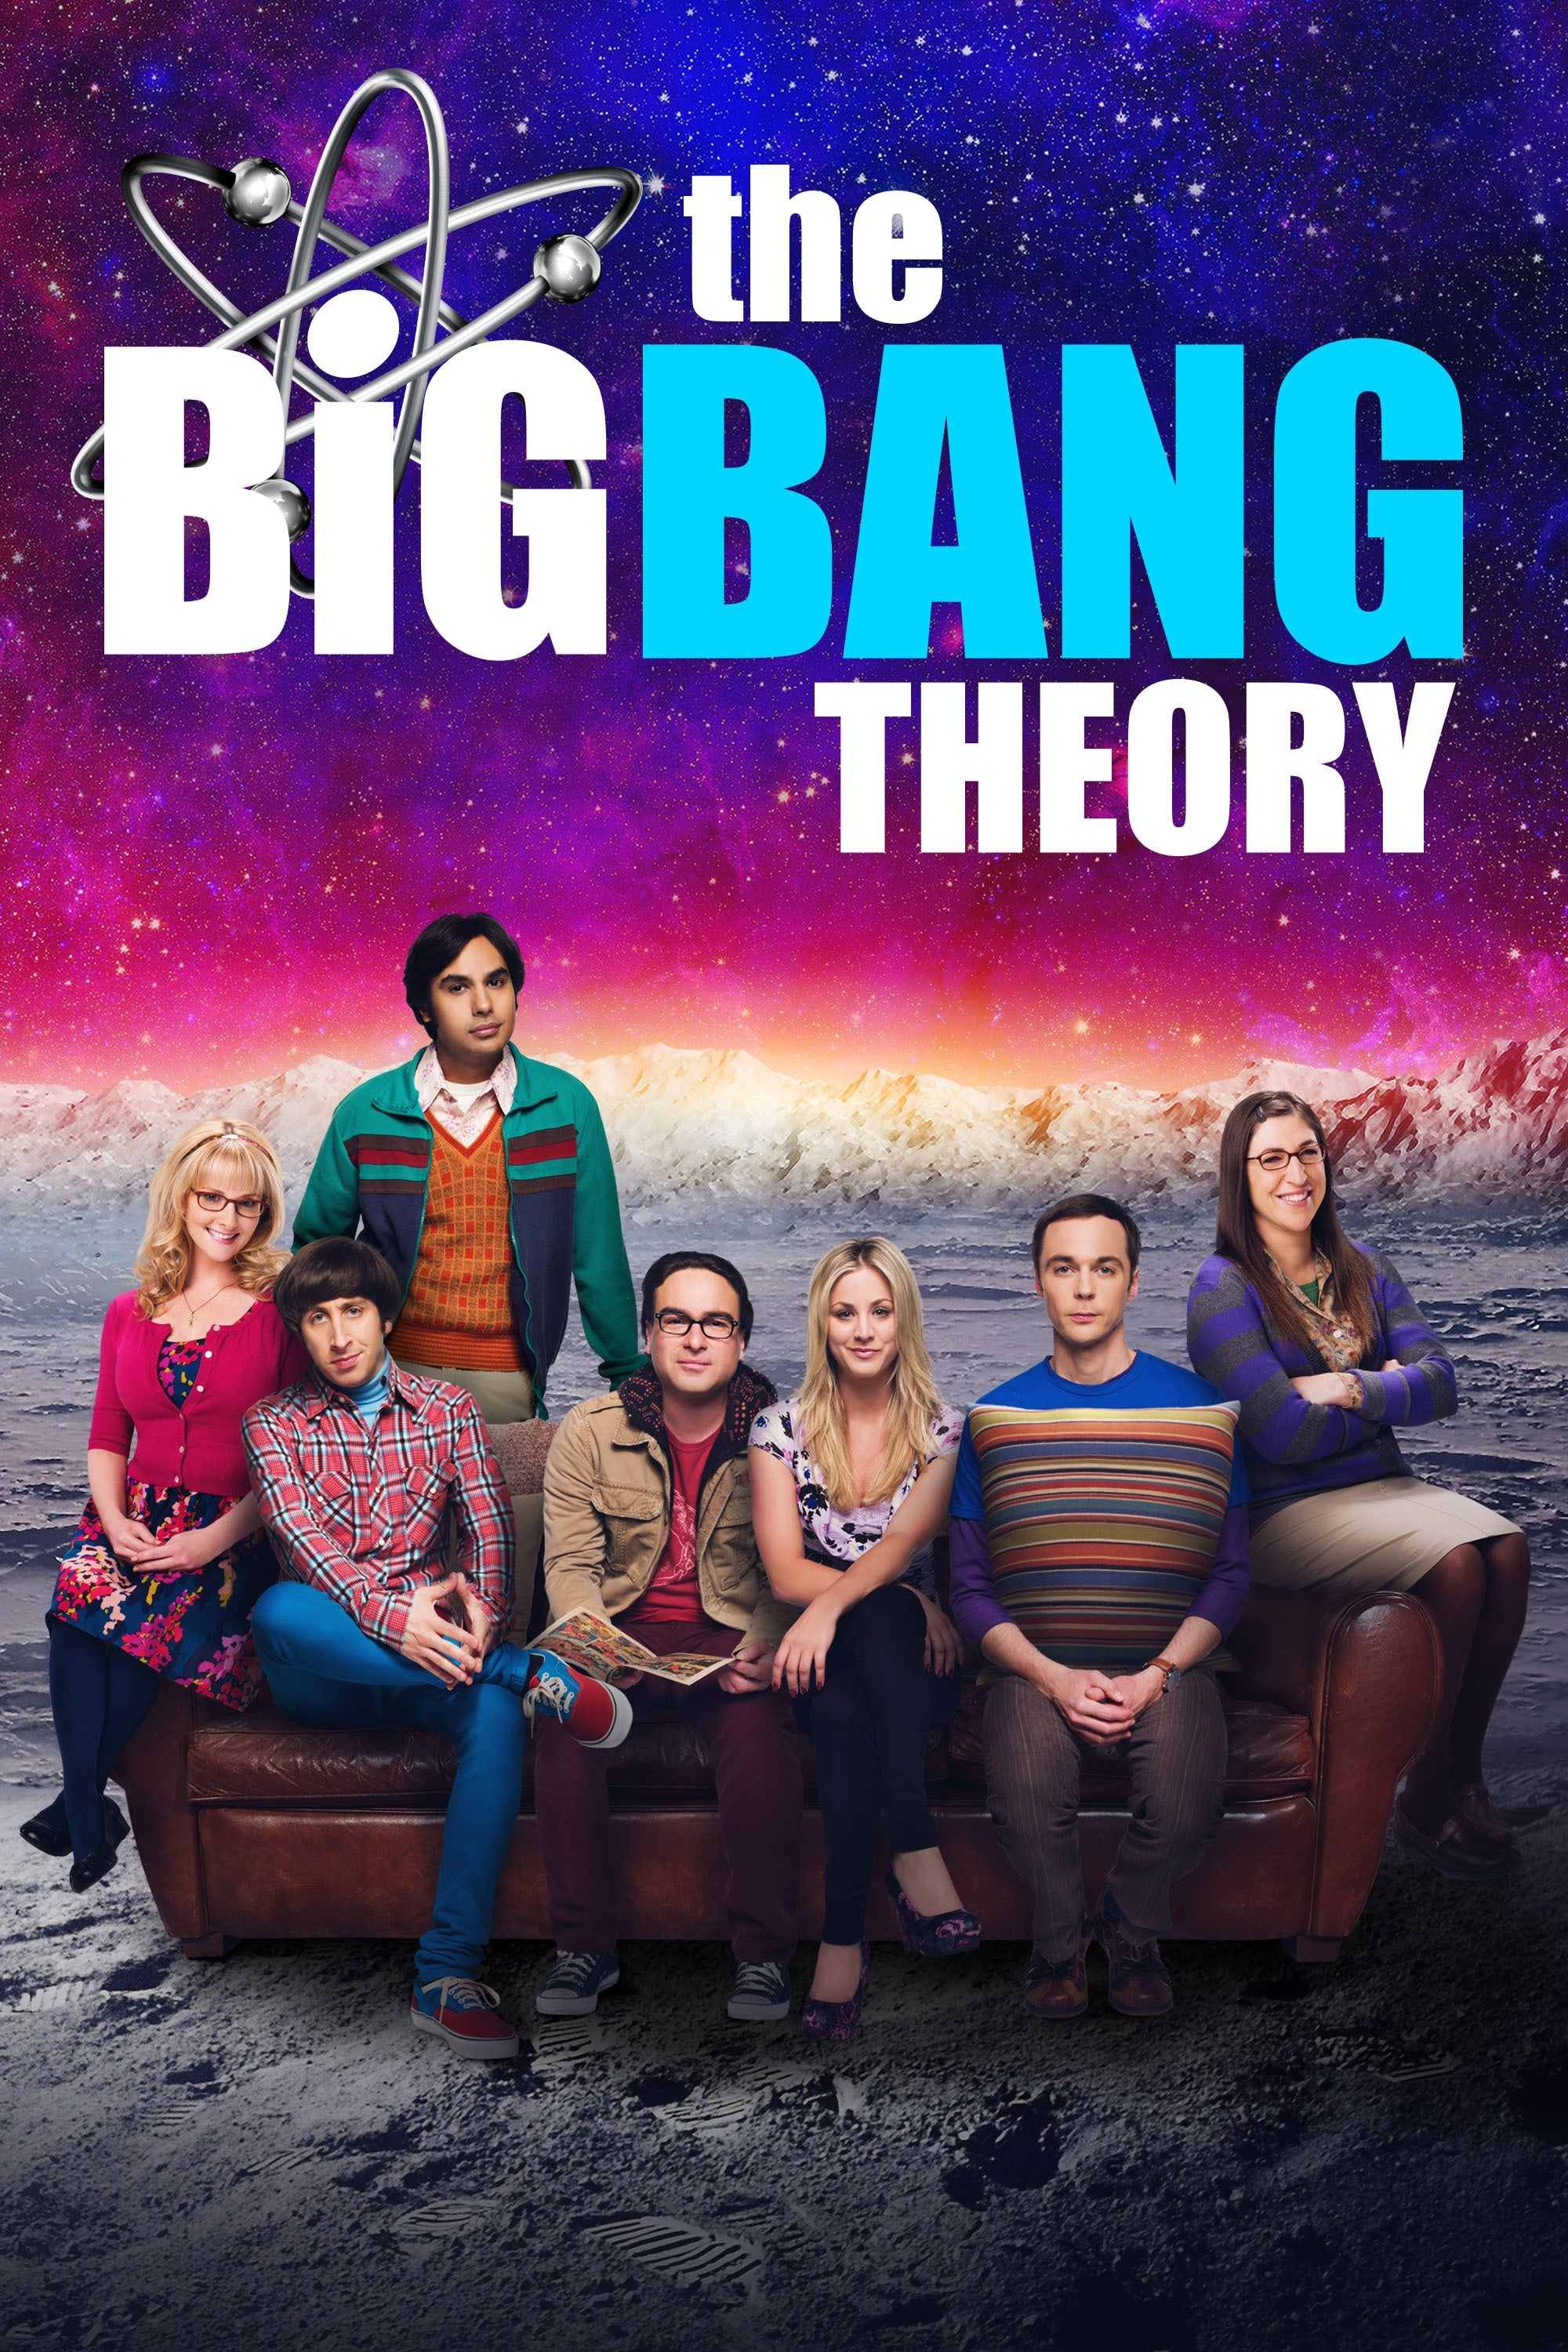 The Big Bang Theory Season 3